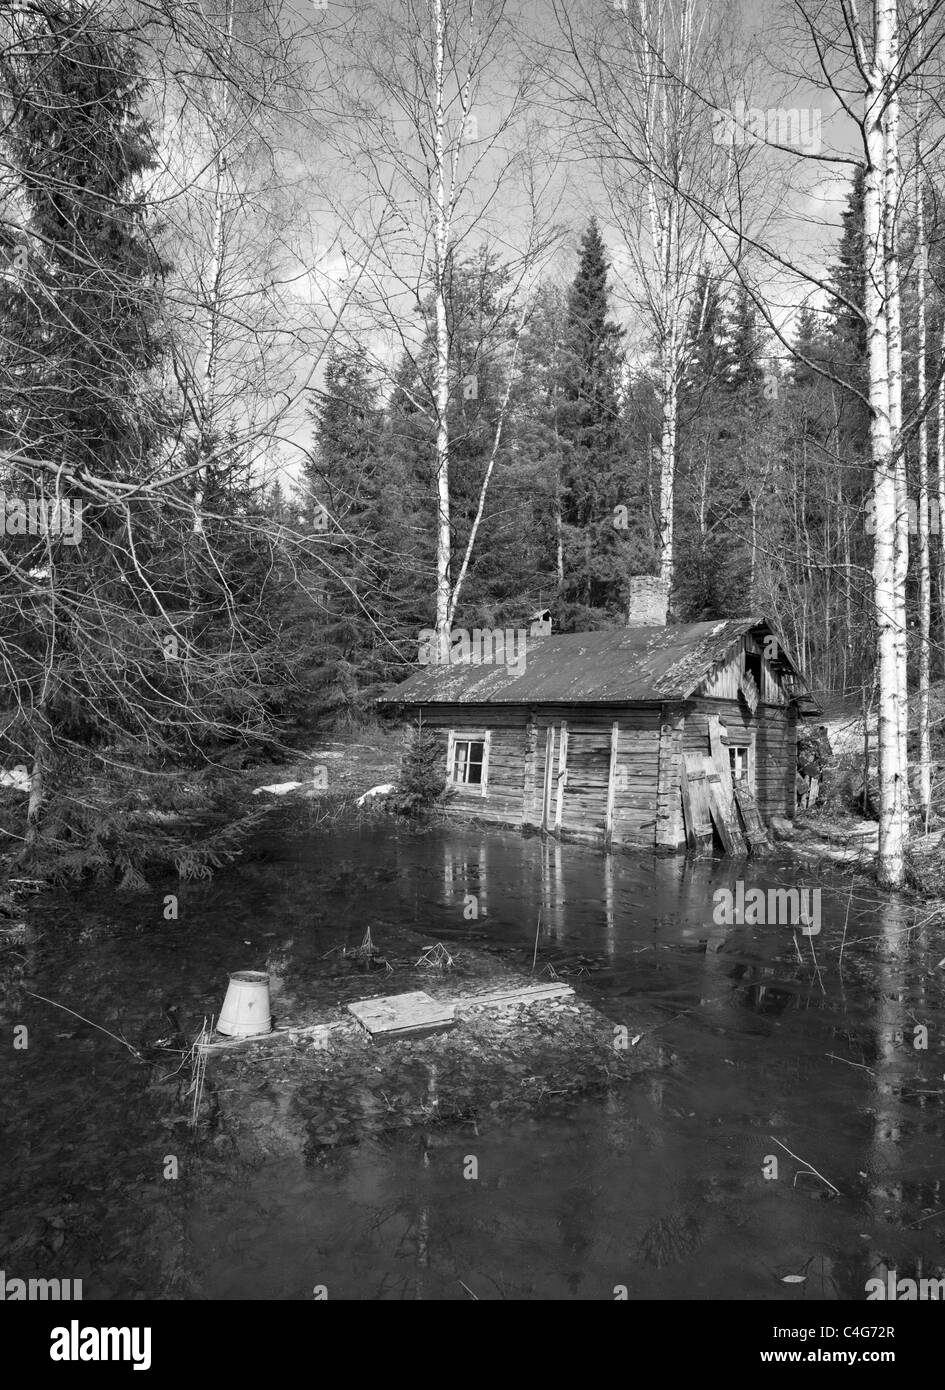 Old decaying wooden sauna made of logs flooded at Springtime , Finland - Stock Image